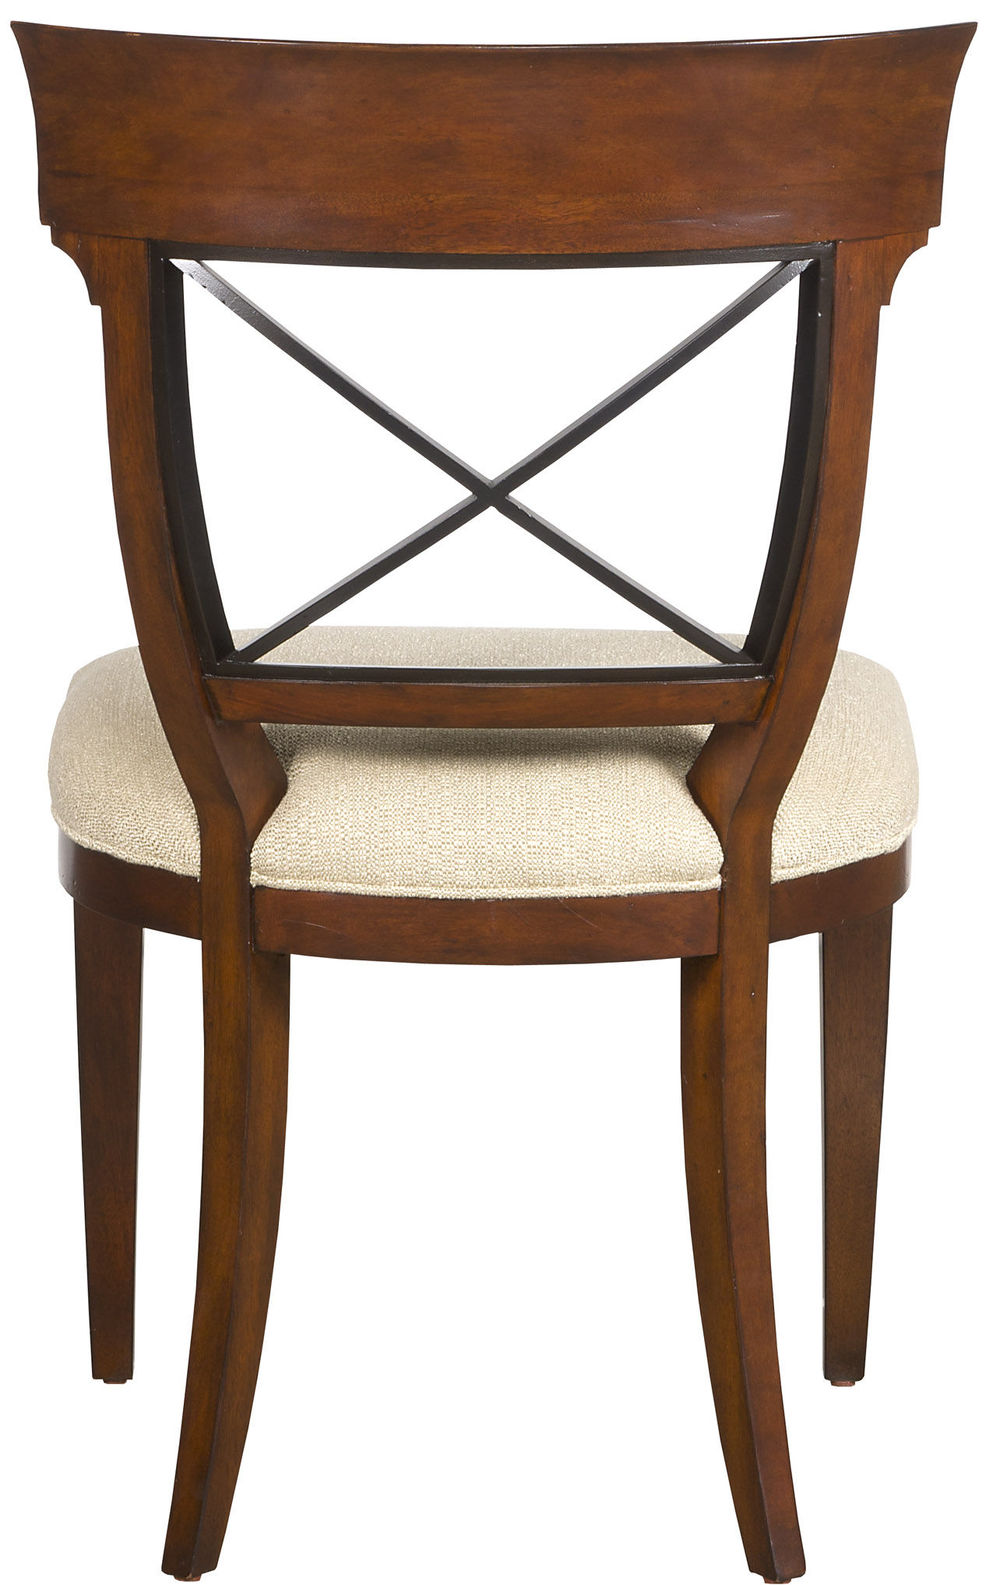 Vanguard Furniture - Hector Side Chair